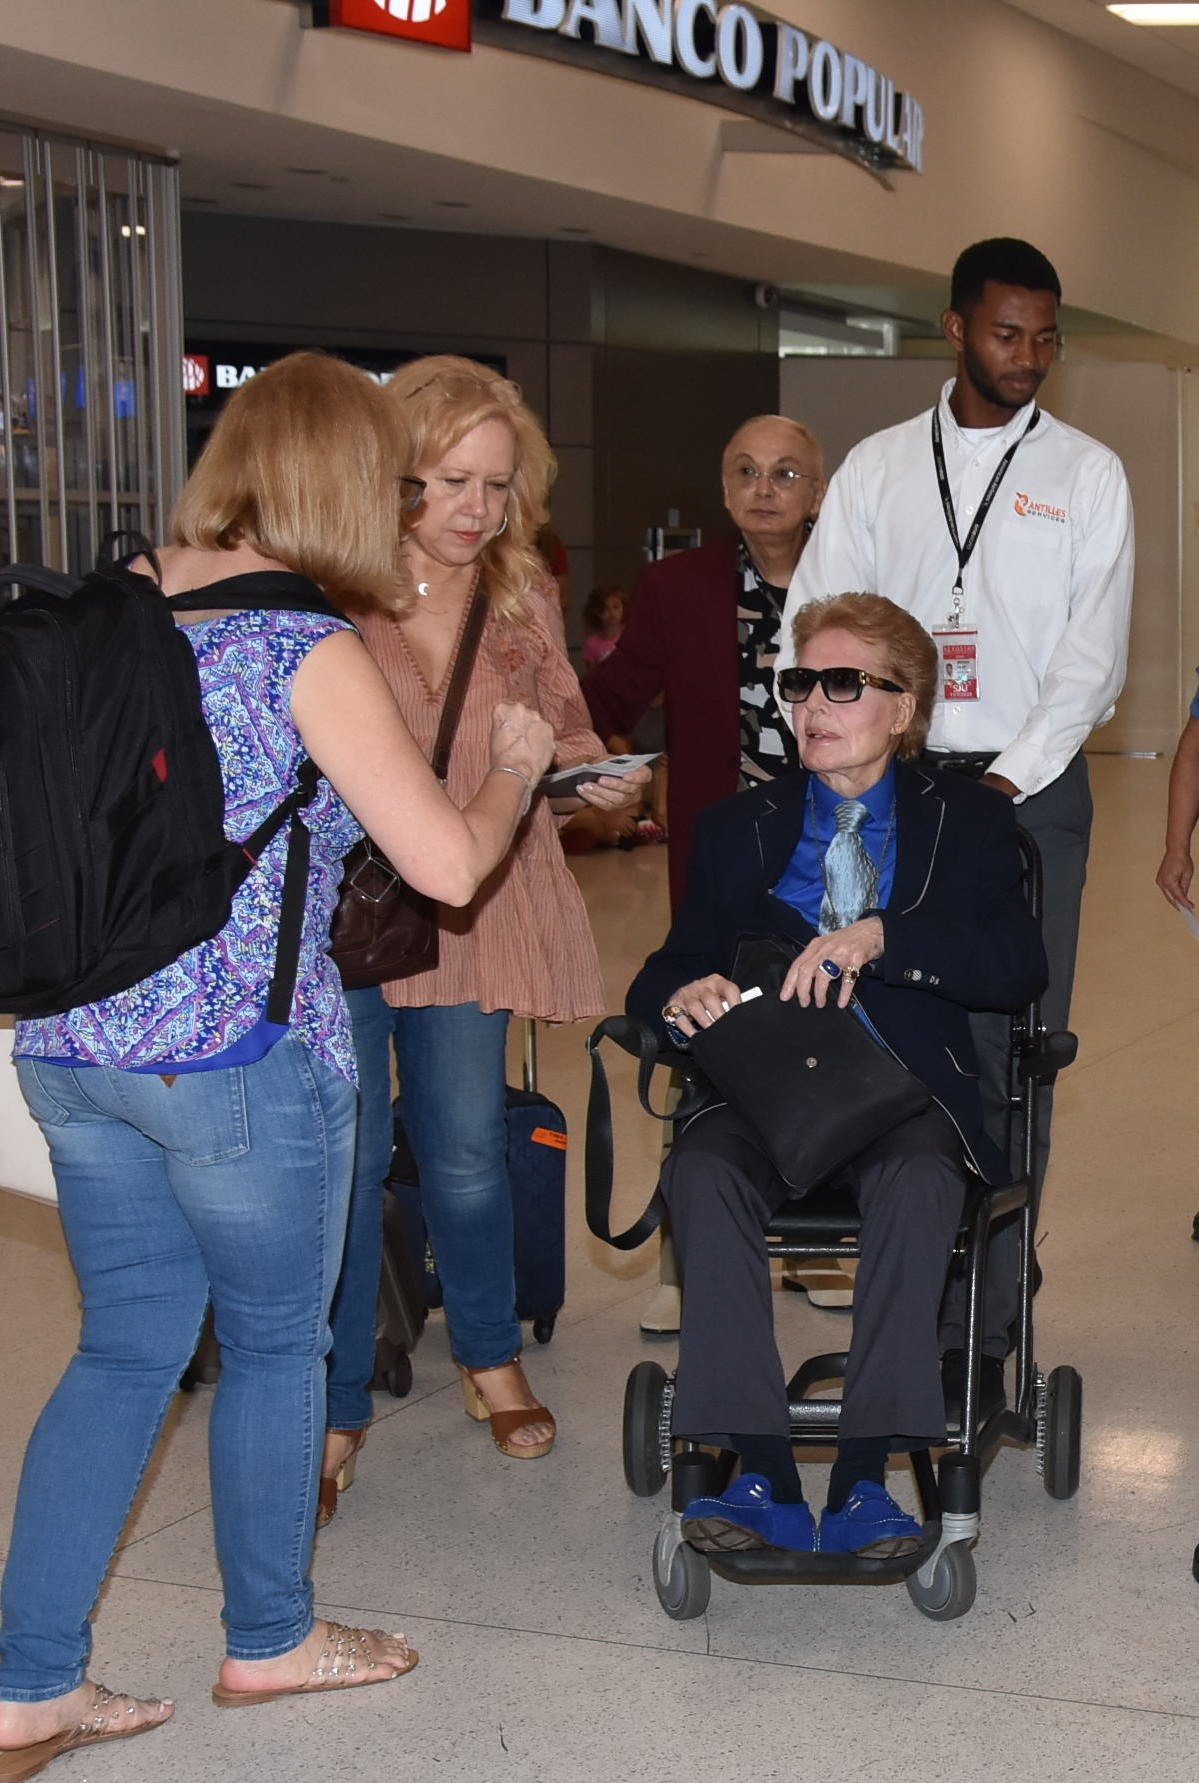 Photo © 2019 ARMimage/The Grosby GroupEXCLUSIVE Aeropuerto Isla Verde, Puerto Rico Julio, 28, 2019 WALTER MERCADO Y EDNITA NAZARIO coincidieron en el aeropuerto LMM de Isla Verde, PR. Ambas estrellas , que se mostraron su amor y admiración mutua, v (Foto: ARMimage/The Grosby Group)